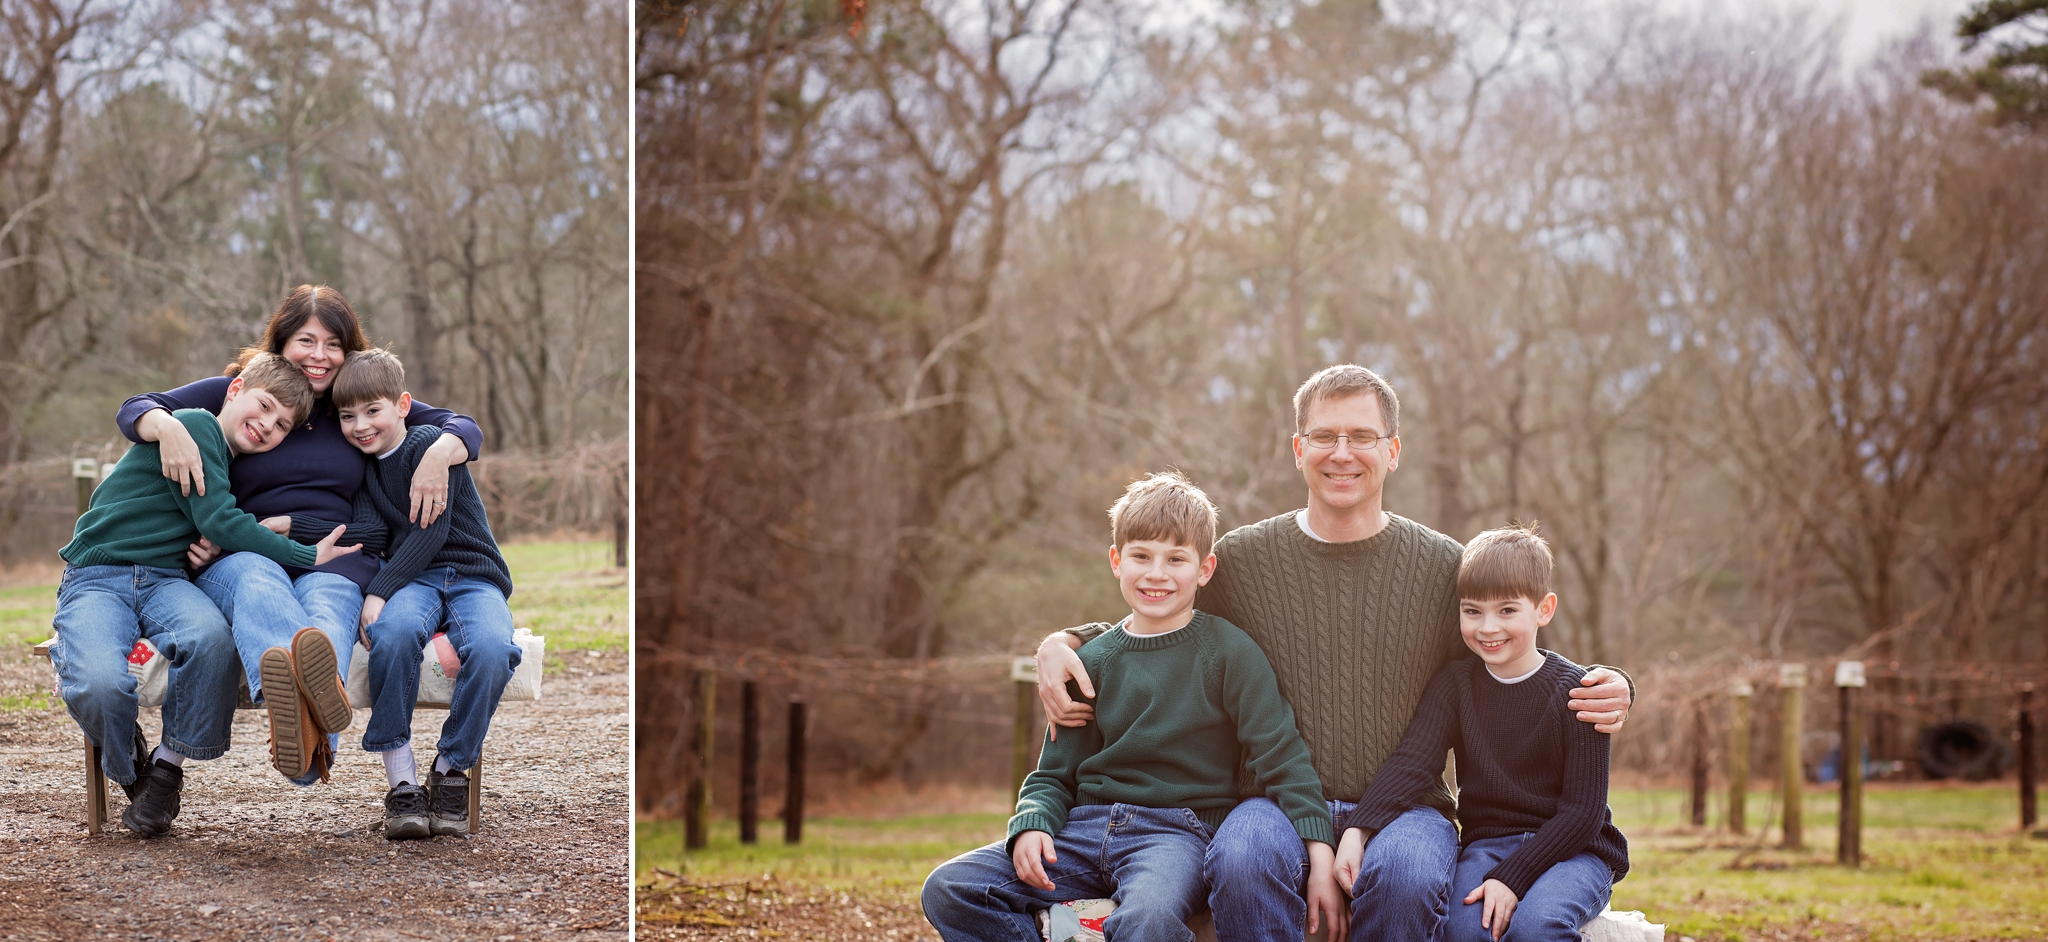 Mother and father both snap photos with sons during family photography session.